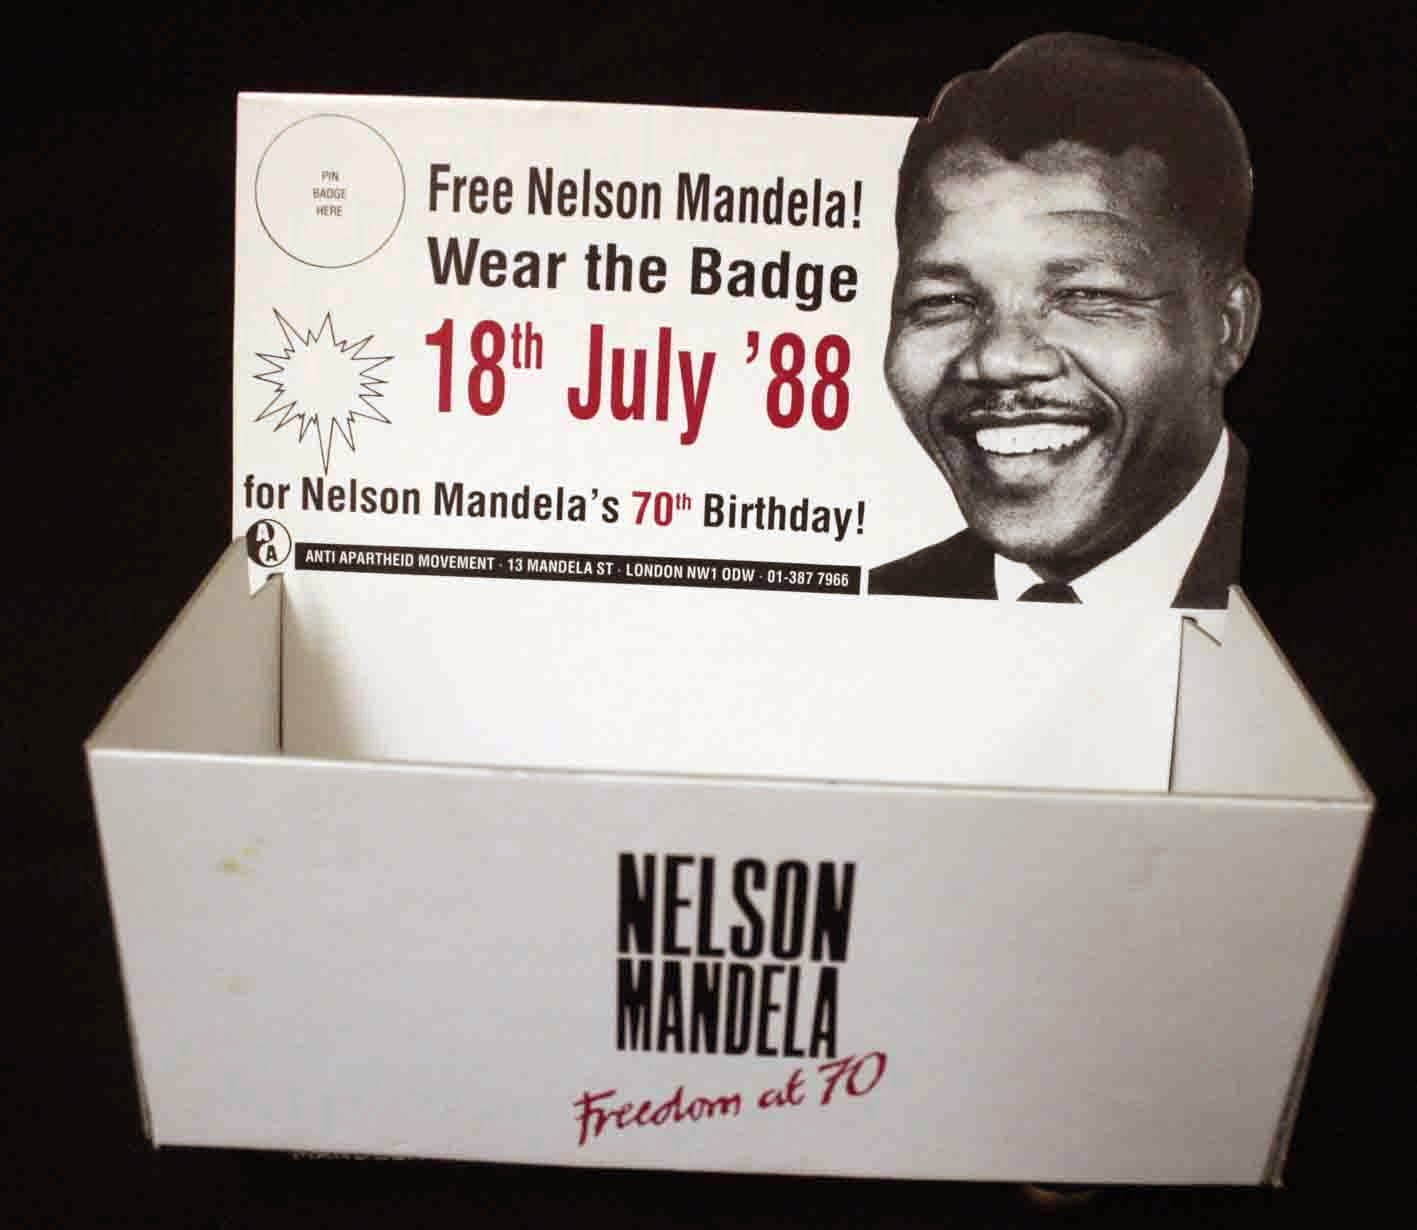 apartheid and nelson mandela essay Find out how you can get help by reading this sample on apartheid timeline and hiring expert essay december 1956-nelson mandela, an anti-apartheid activist.